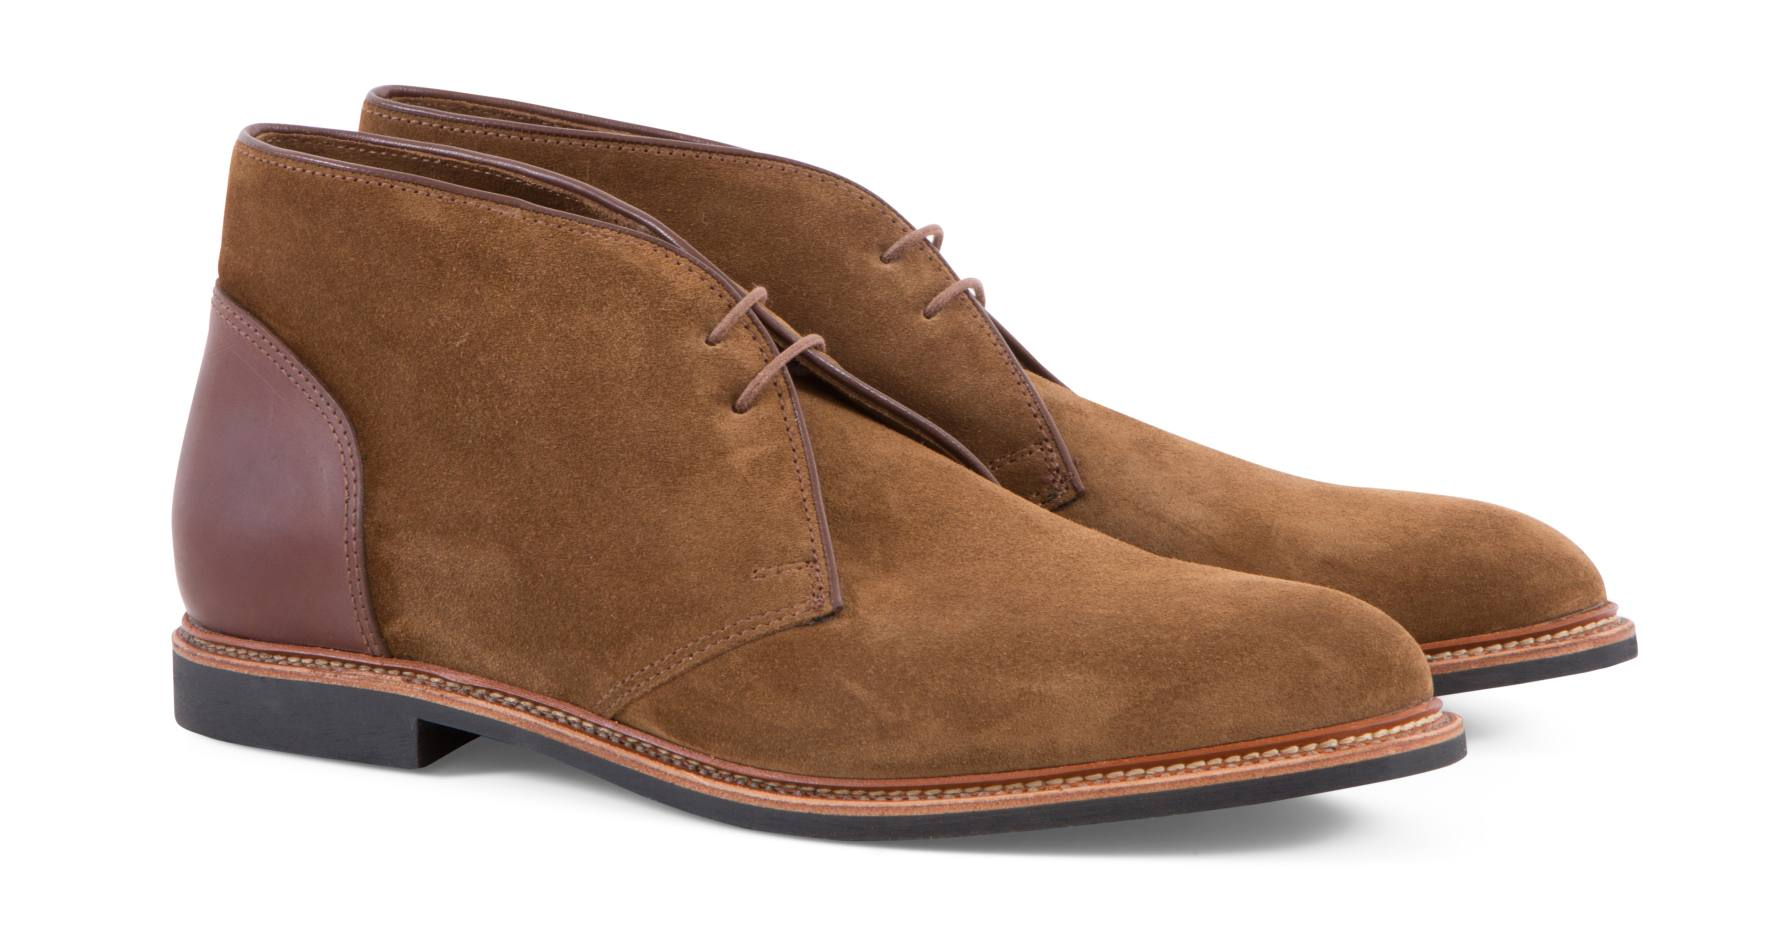 Roadstar suede and cordovan boots, £498